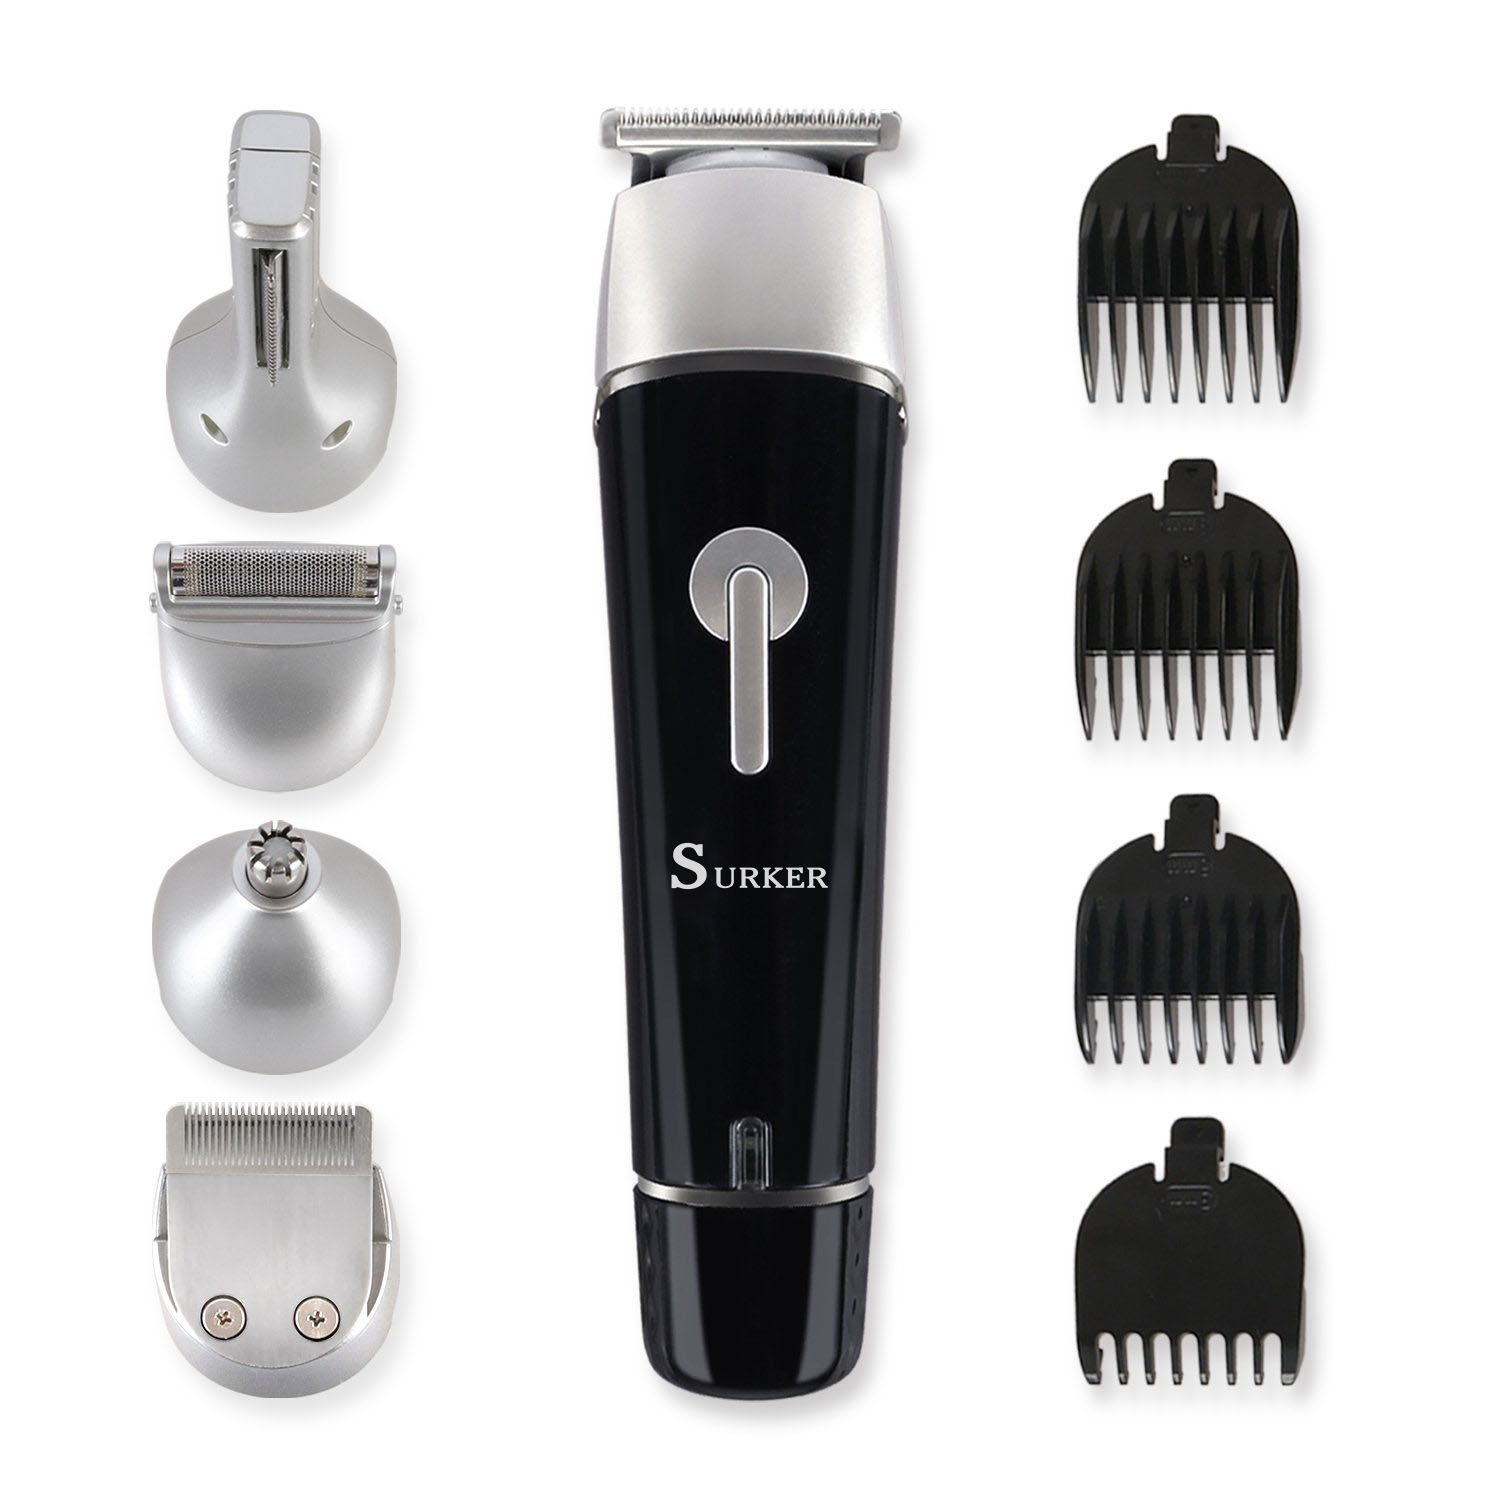 Surker 5 in 1 Multifunctional Electric Hair Clipper Beard Trimmer Rechargeable Epilator Waterproof